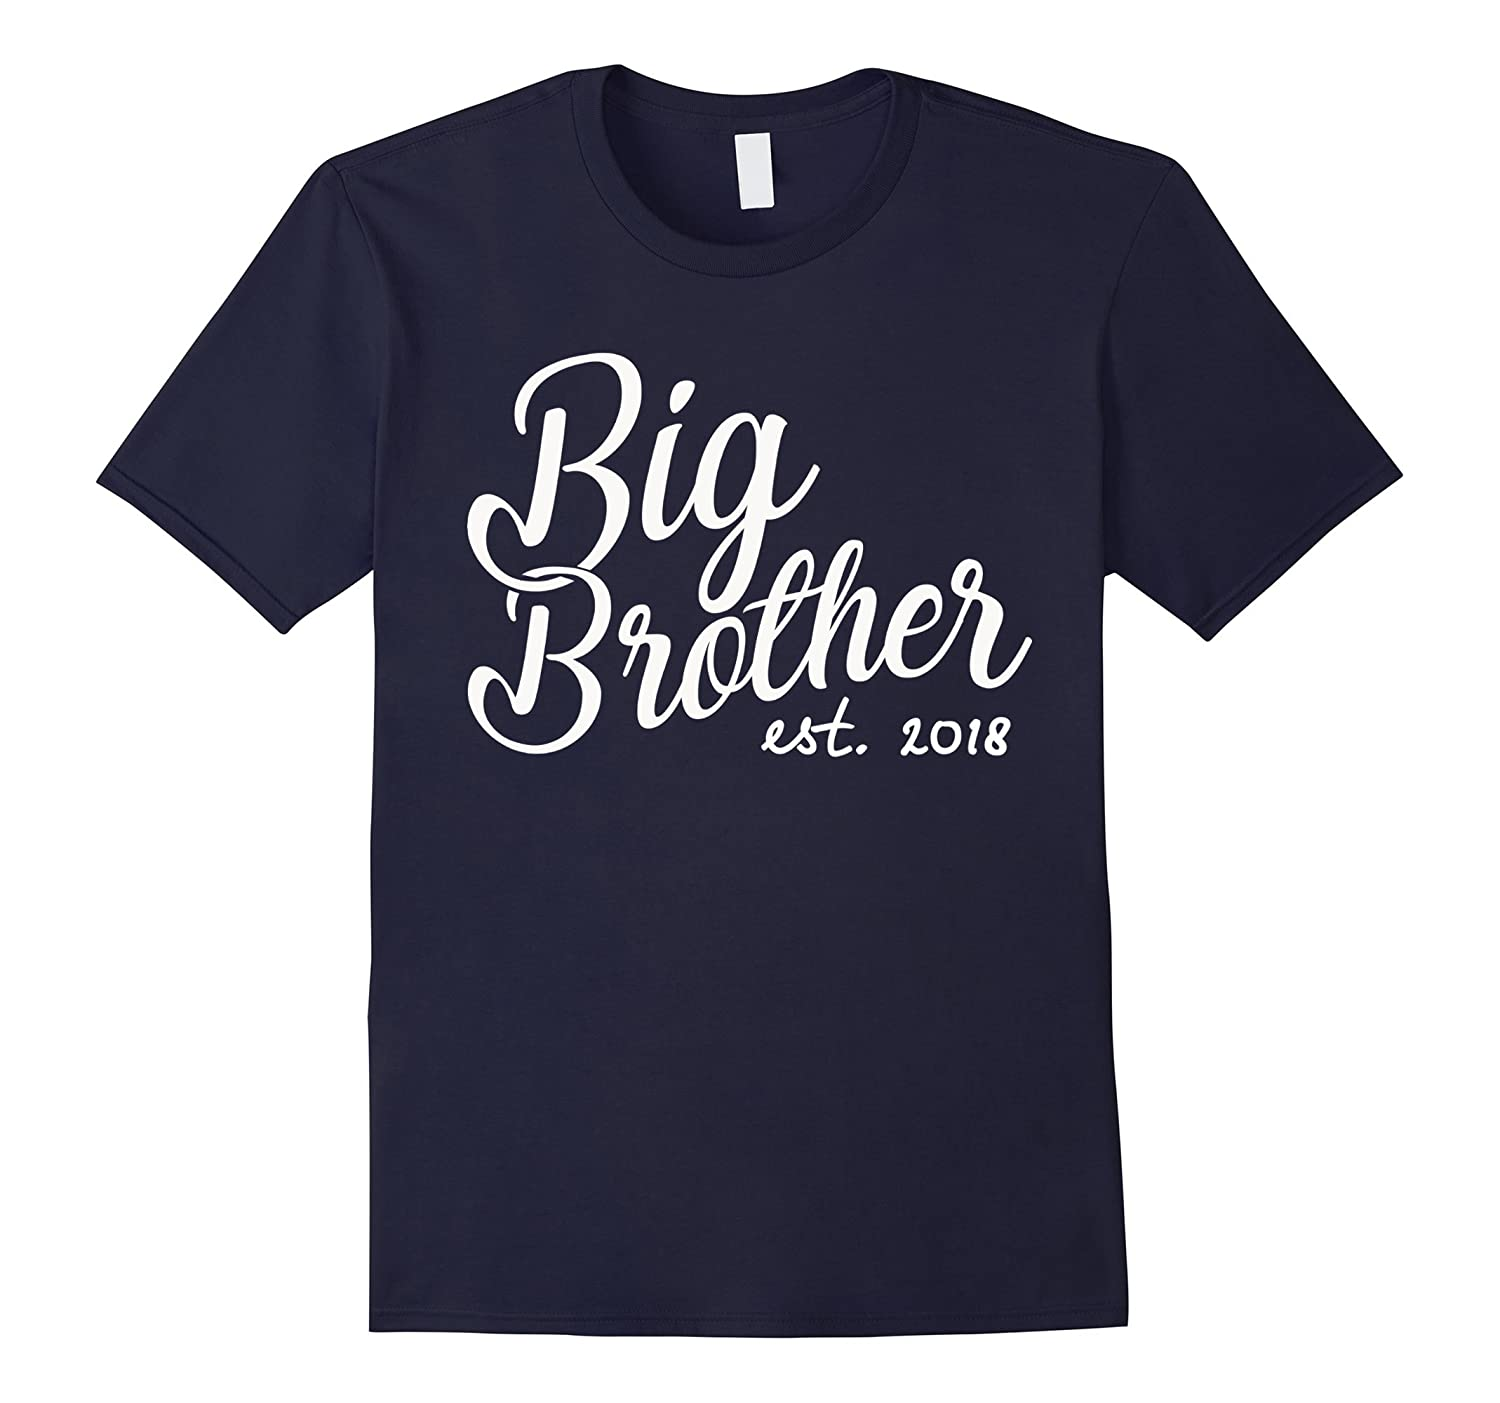 Big Brother Announcement 2018 Shirt for Kids and Adults-ah my shirt one gift